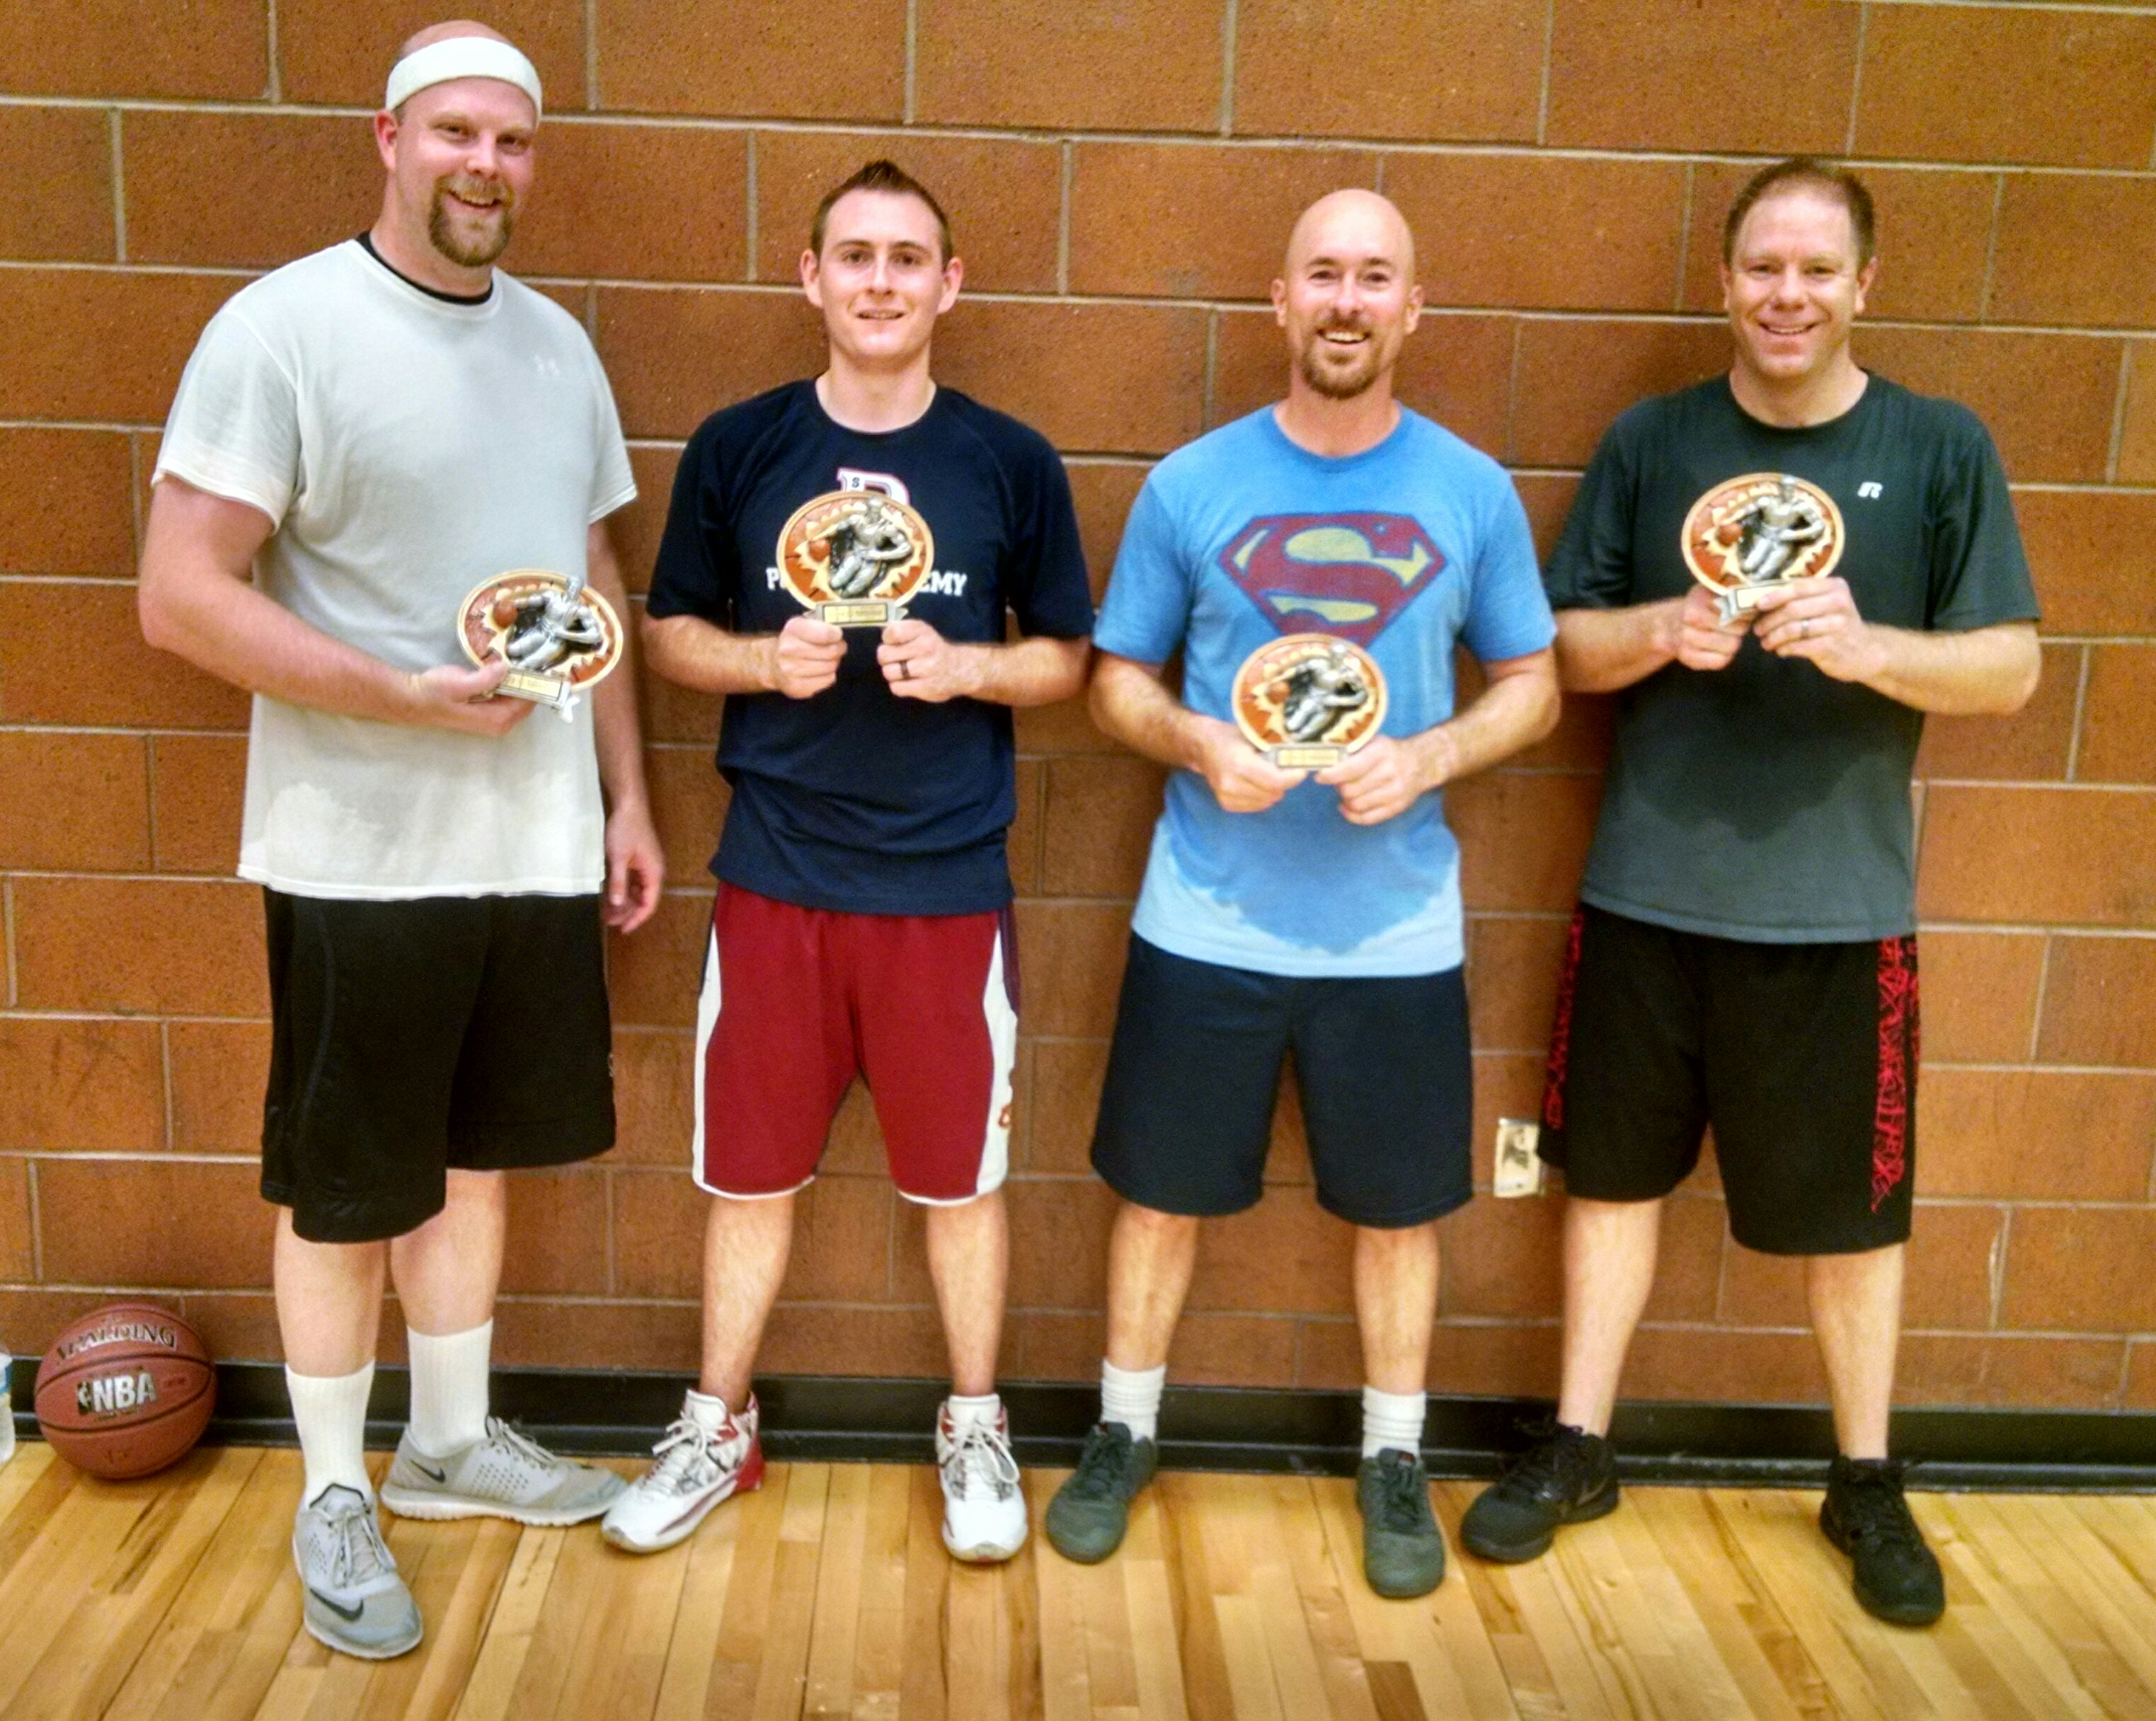 3 on 3 Champs 16